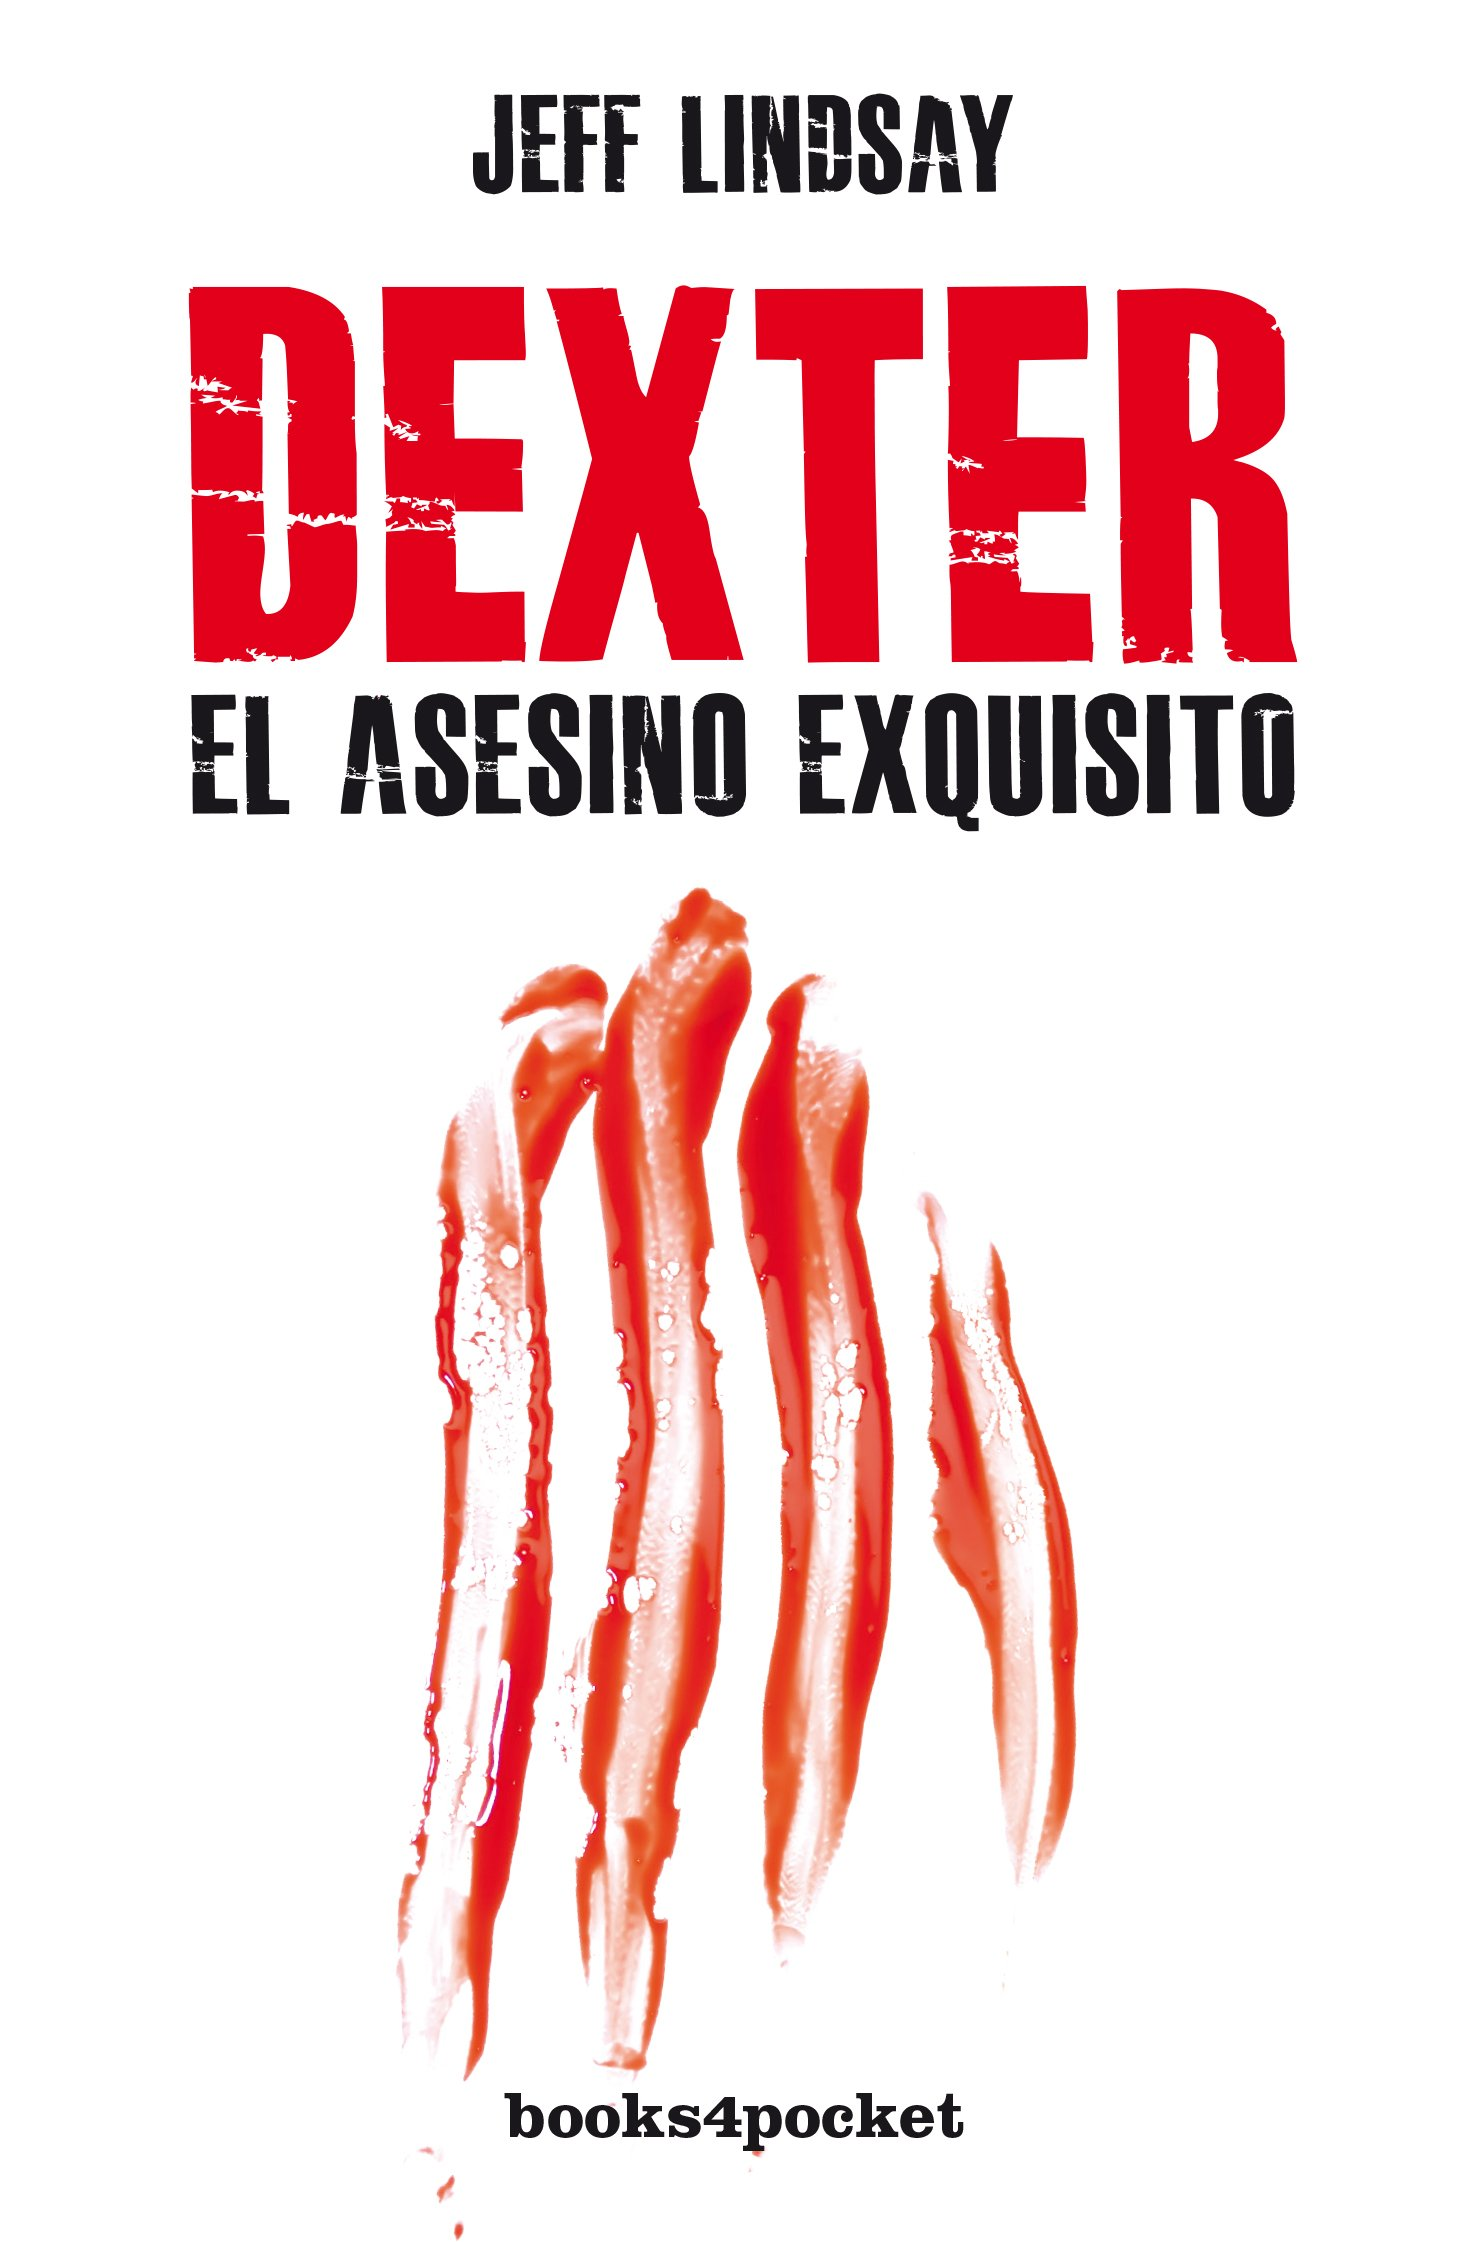 Image OfDexter, El Asesino Exquisito (Books4pocket Narrativa)